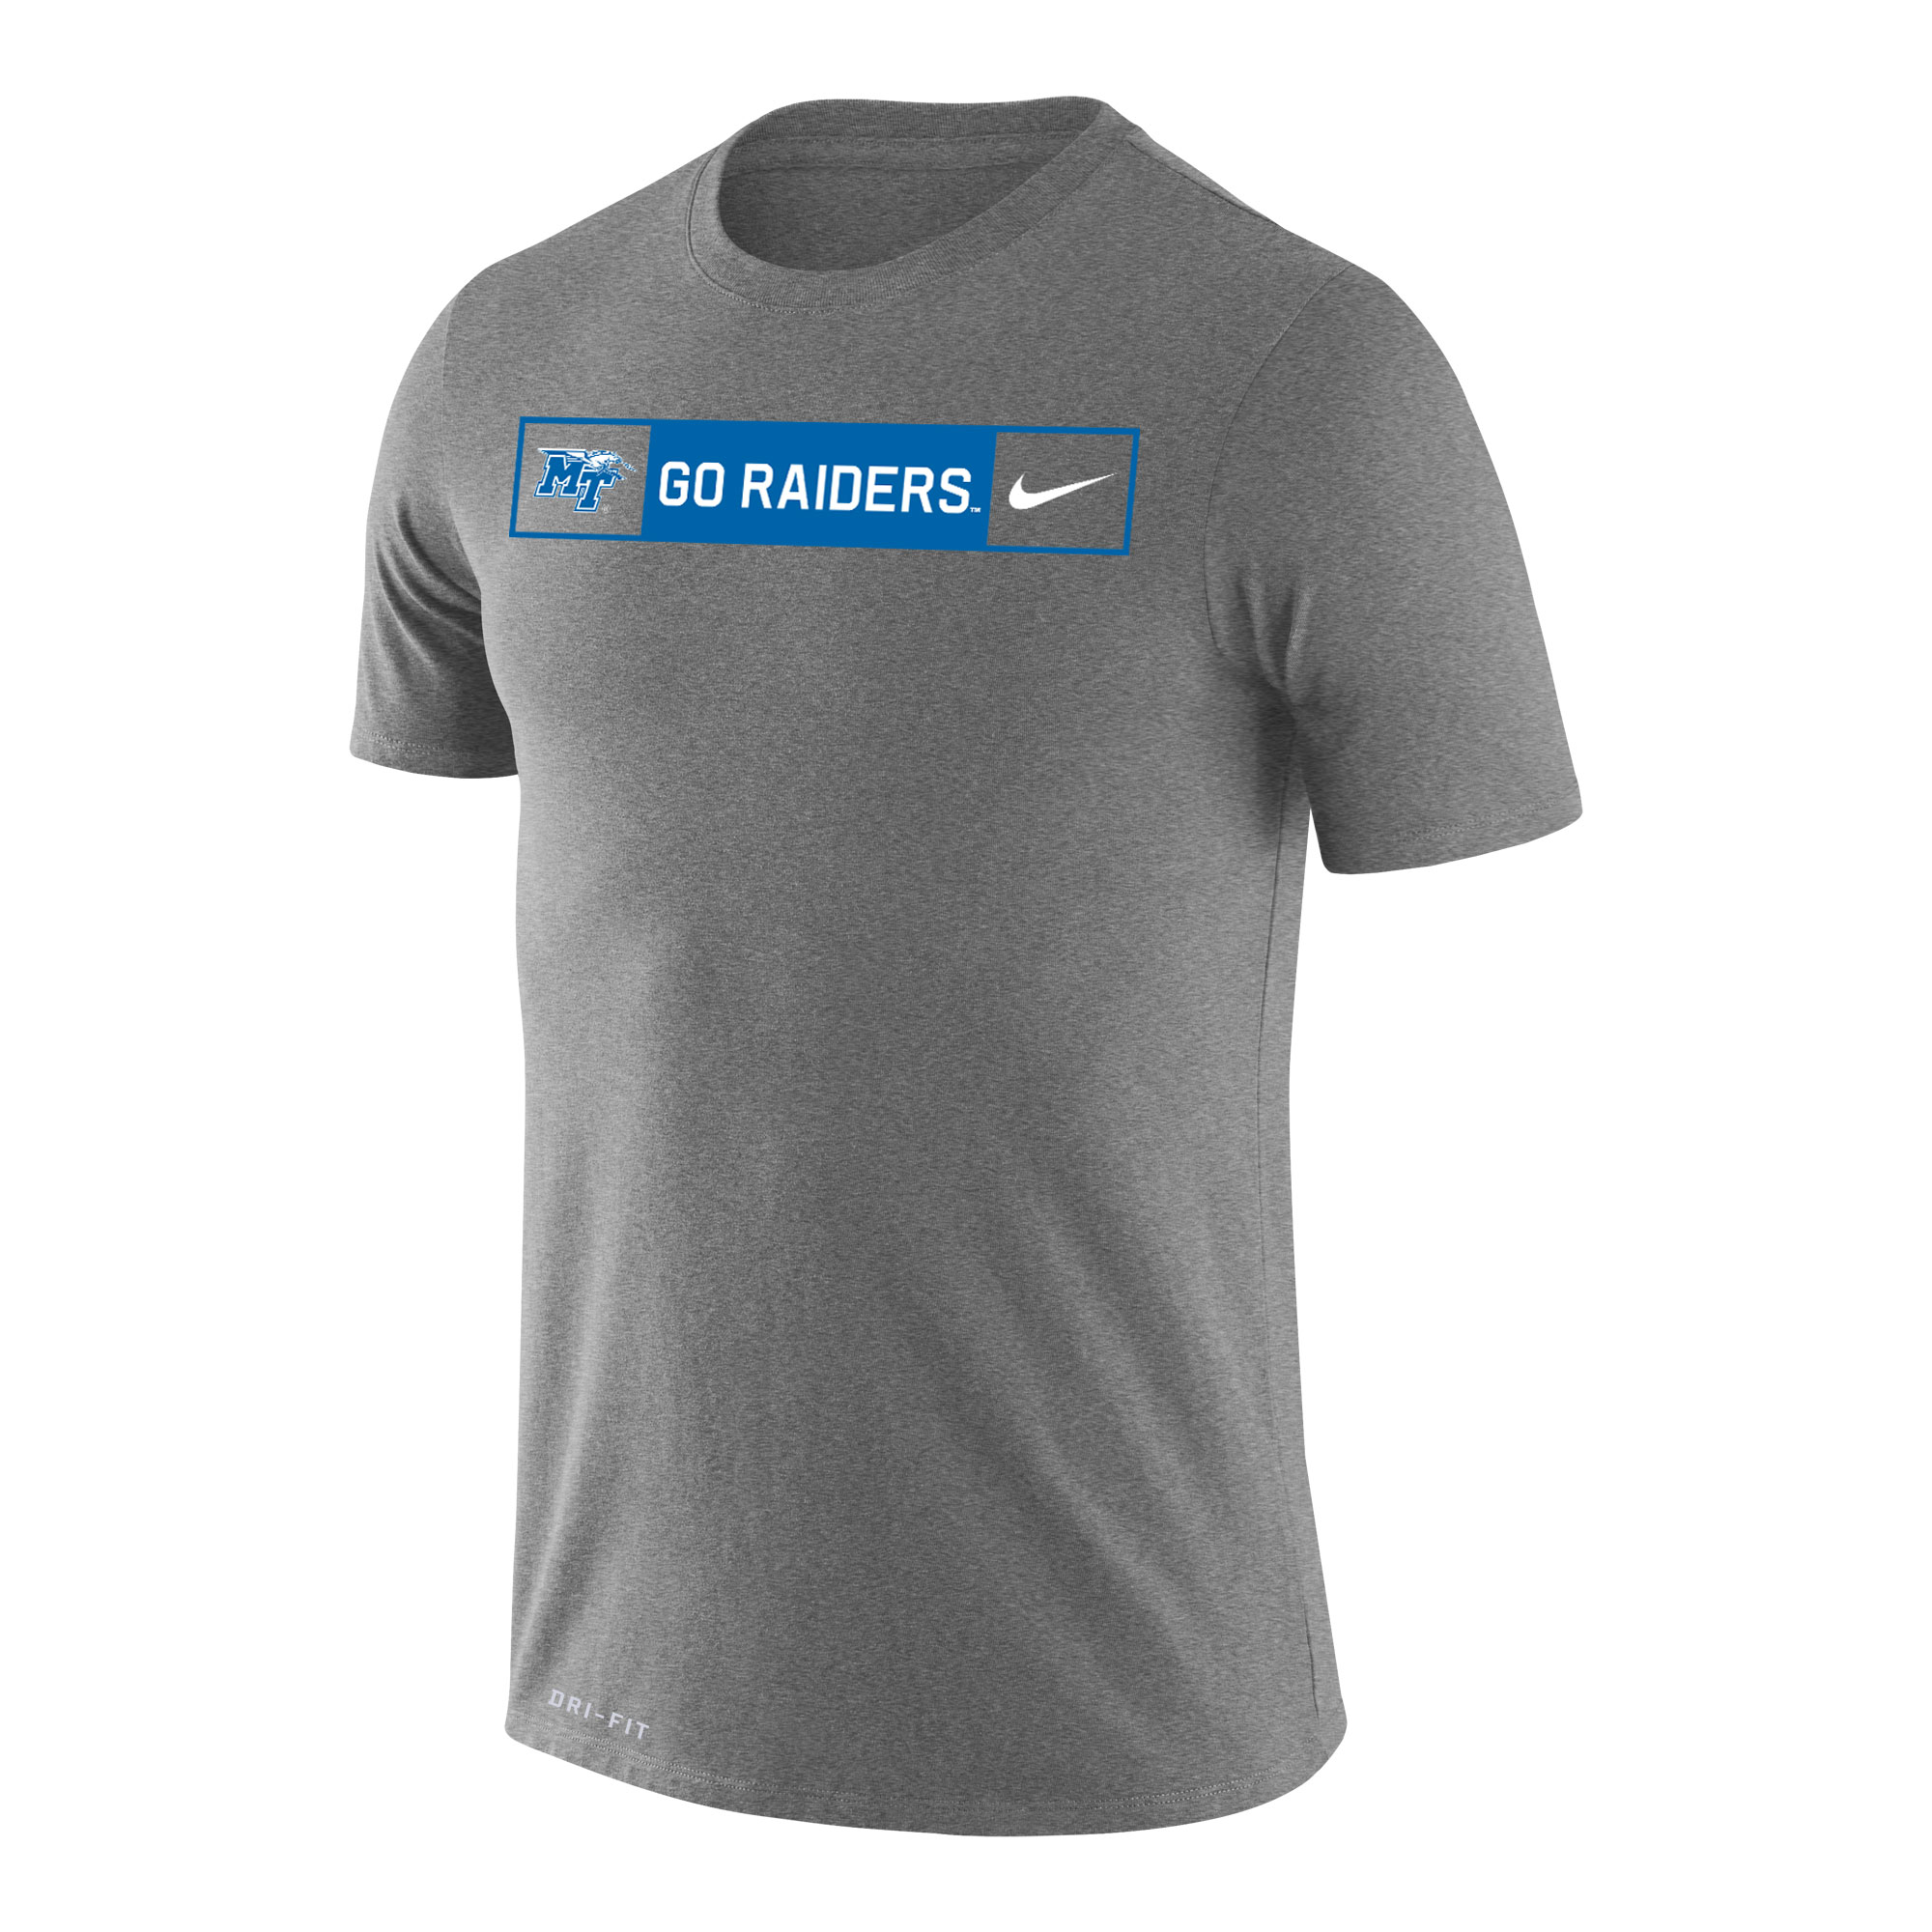 MT Logo w/ Lightning Go Raiders Nike® Dri-Fit Shirt